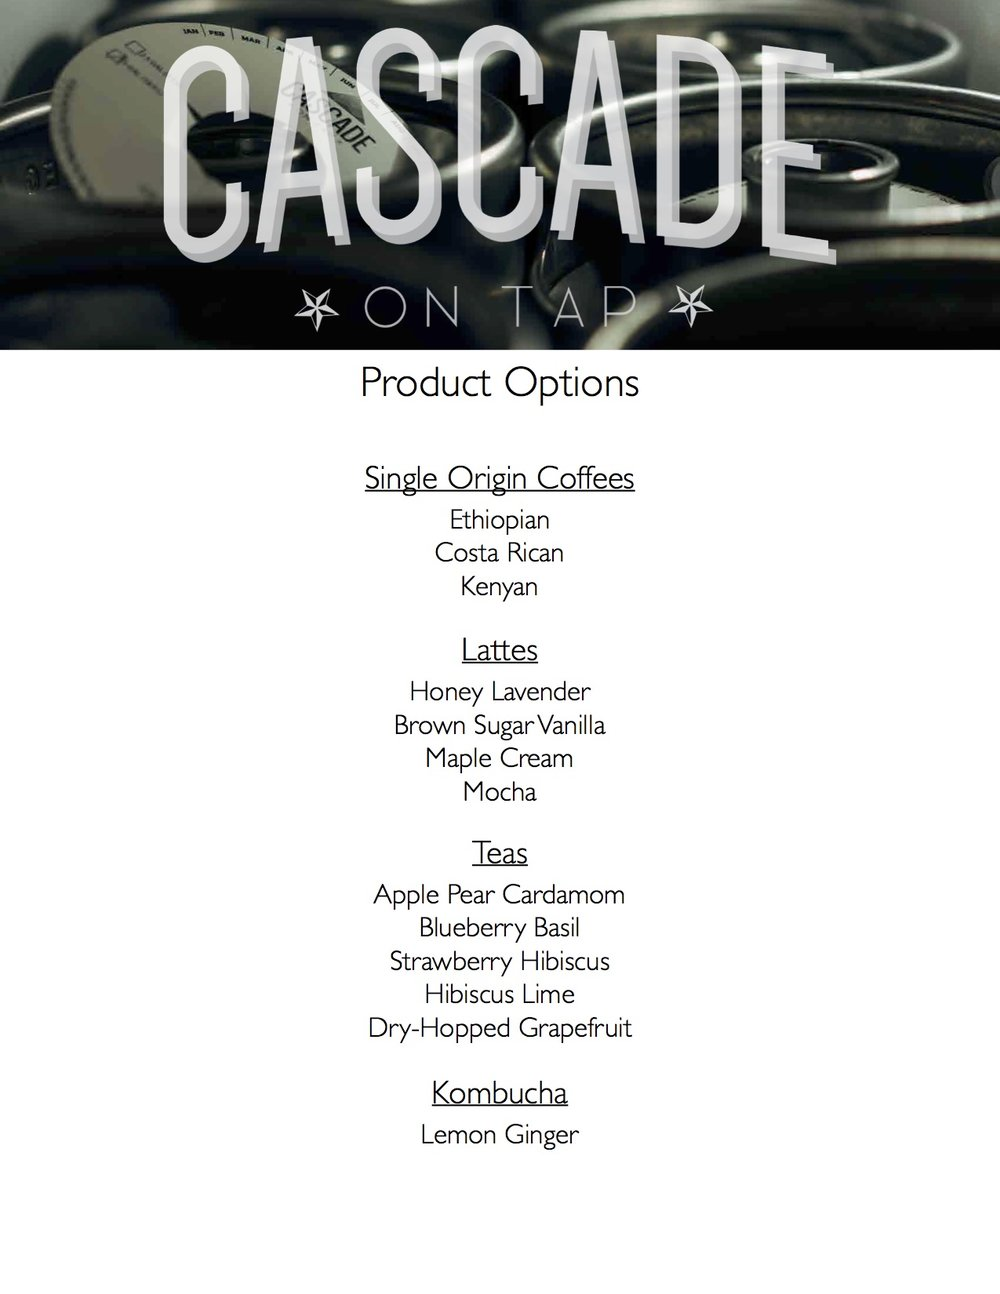 Cascade Product Options.jpg